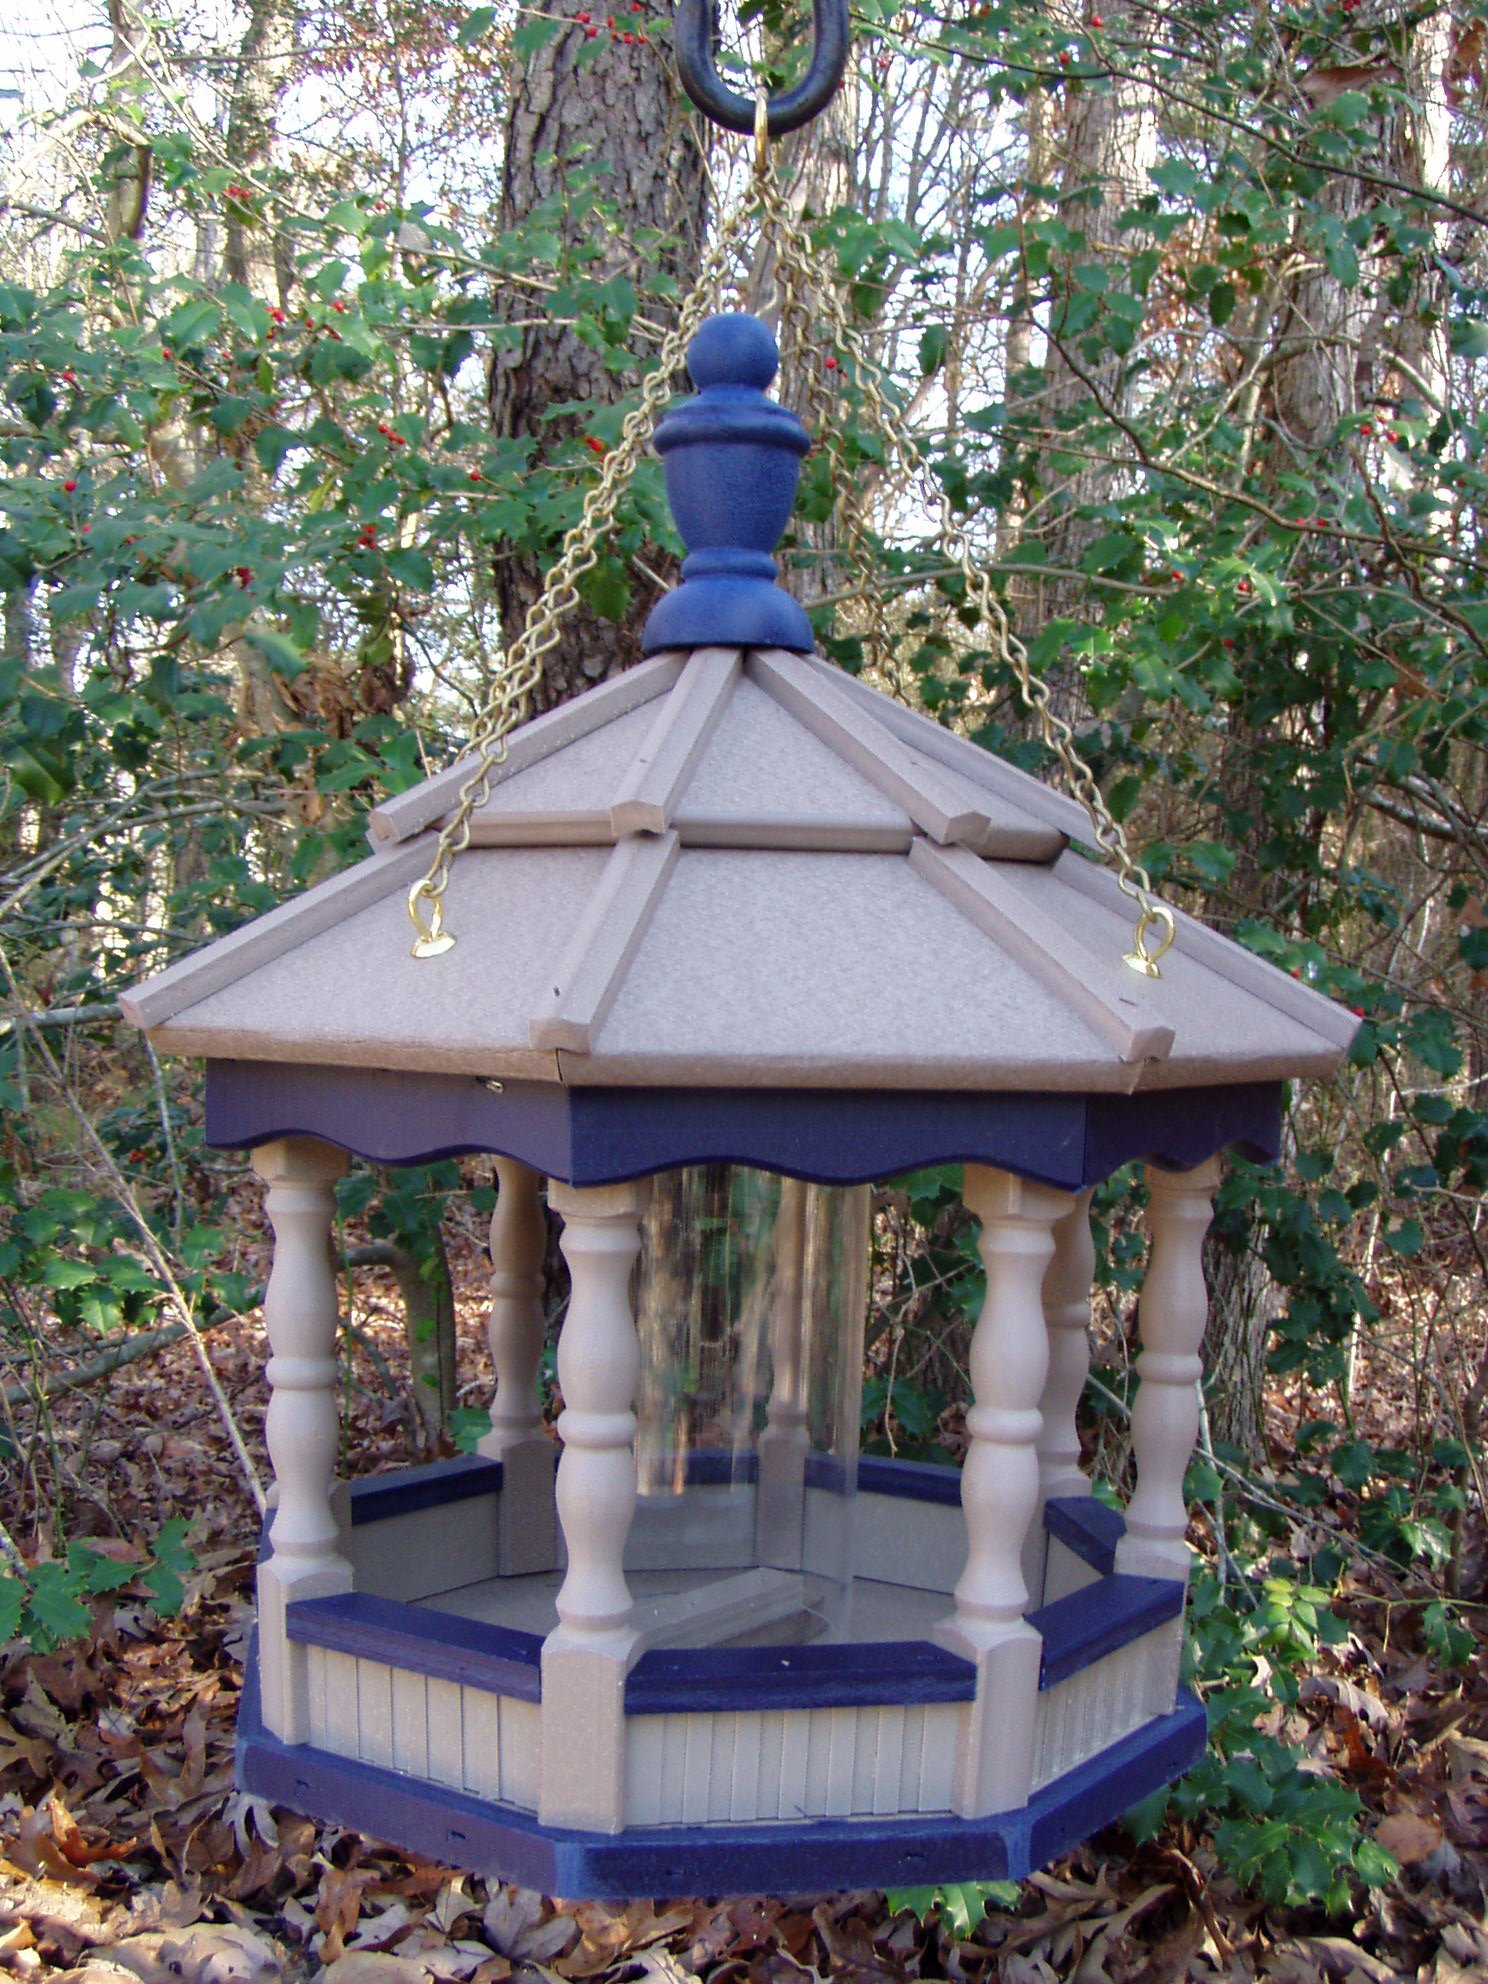 Hanging Poly Bird Feeder Amish Gazebo Handcrafted Homemade Gray & Blue